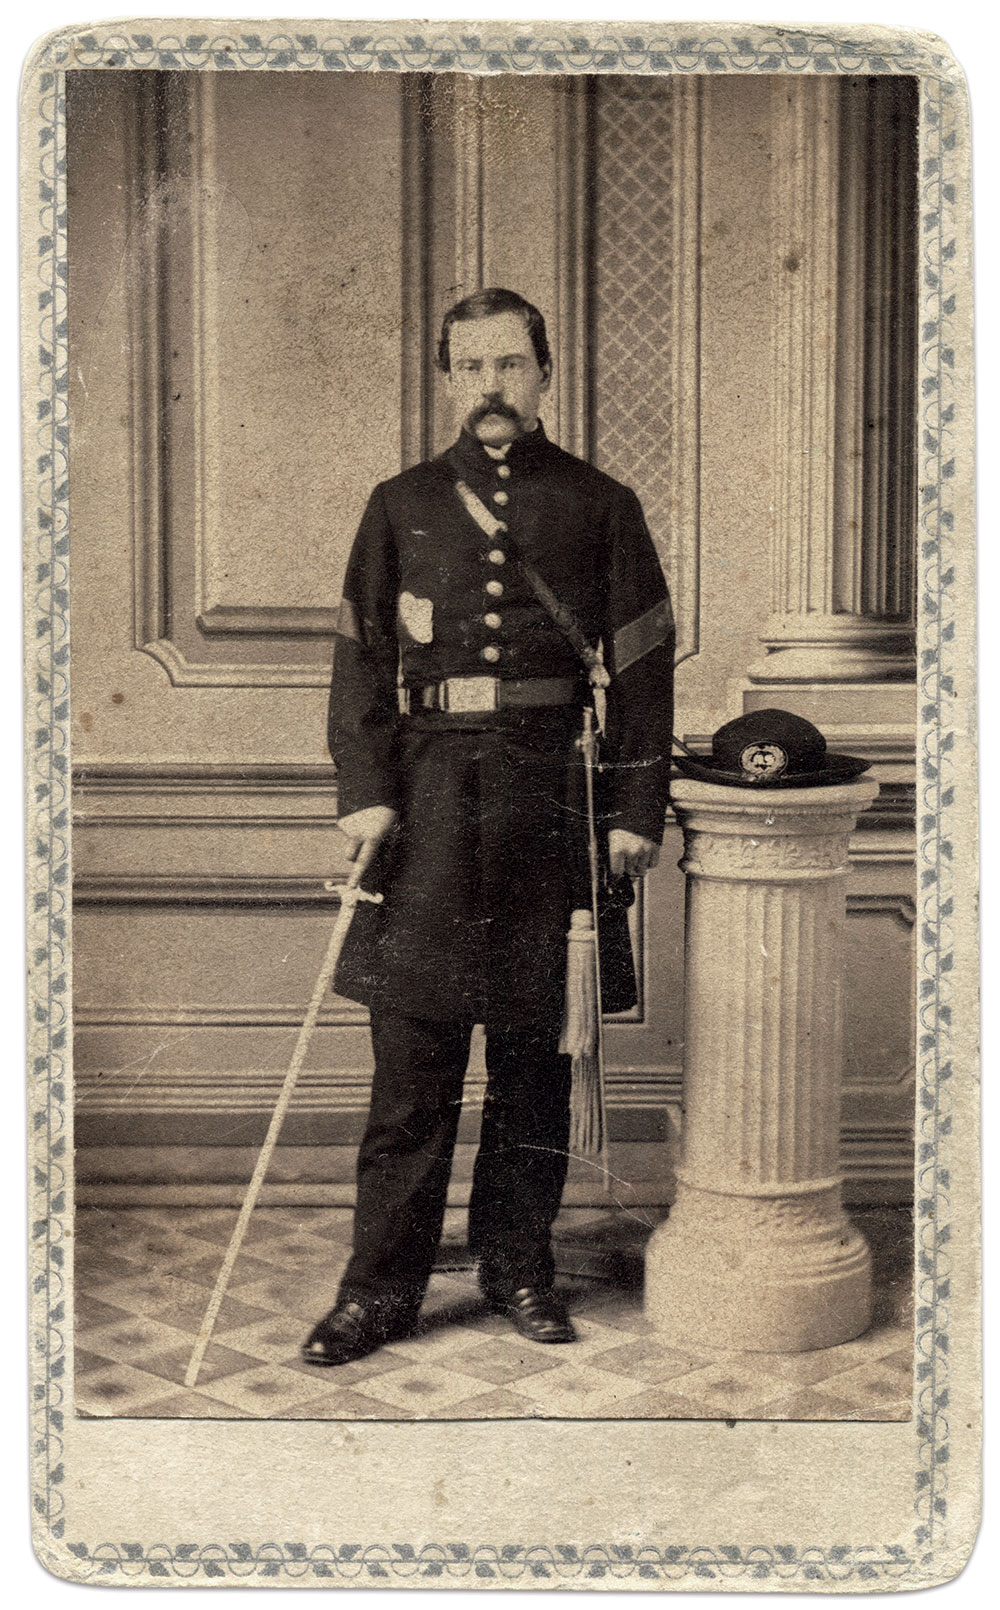 Carte de visite by Huested & Wendell of Albany, N.Y.